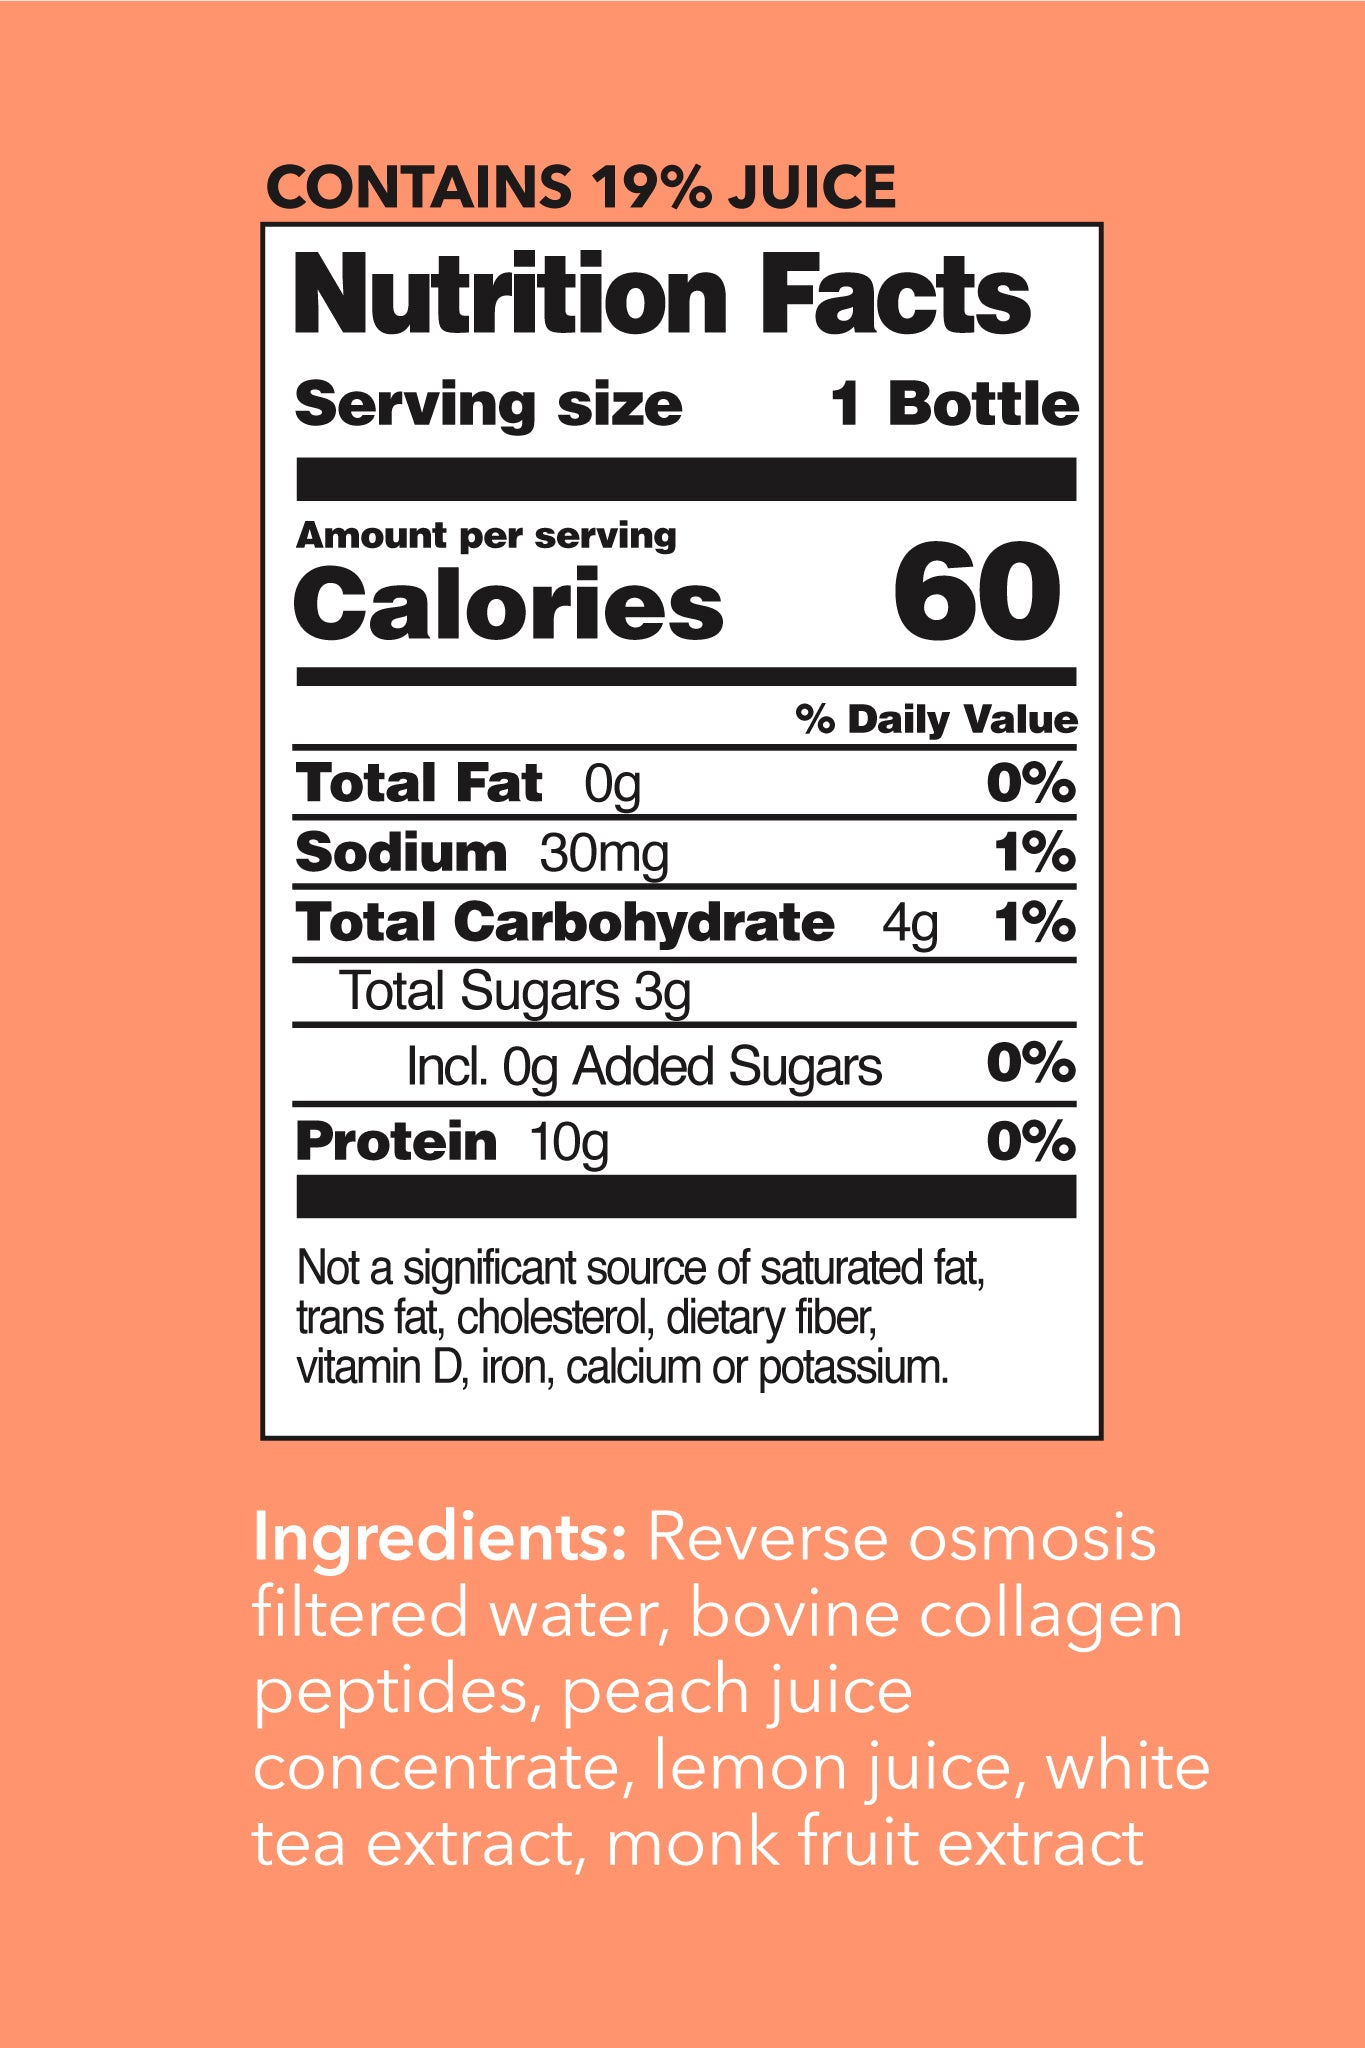 Peach White Tea Collagen Water Nutrition Facts. Contains 19% Juice. Serving Size: 1 Bottle. Per Serving Values - Calories: 60. Total Fat: 0g (0% DV). Sodium: 30mg (1% DV). Total Carbohydrate: 4g (2% DV). Total Sugars: 3g. Incl 0g Added Sugars (0% DV). Protein: 10g.